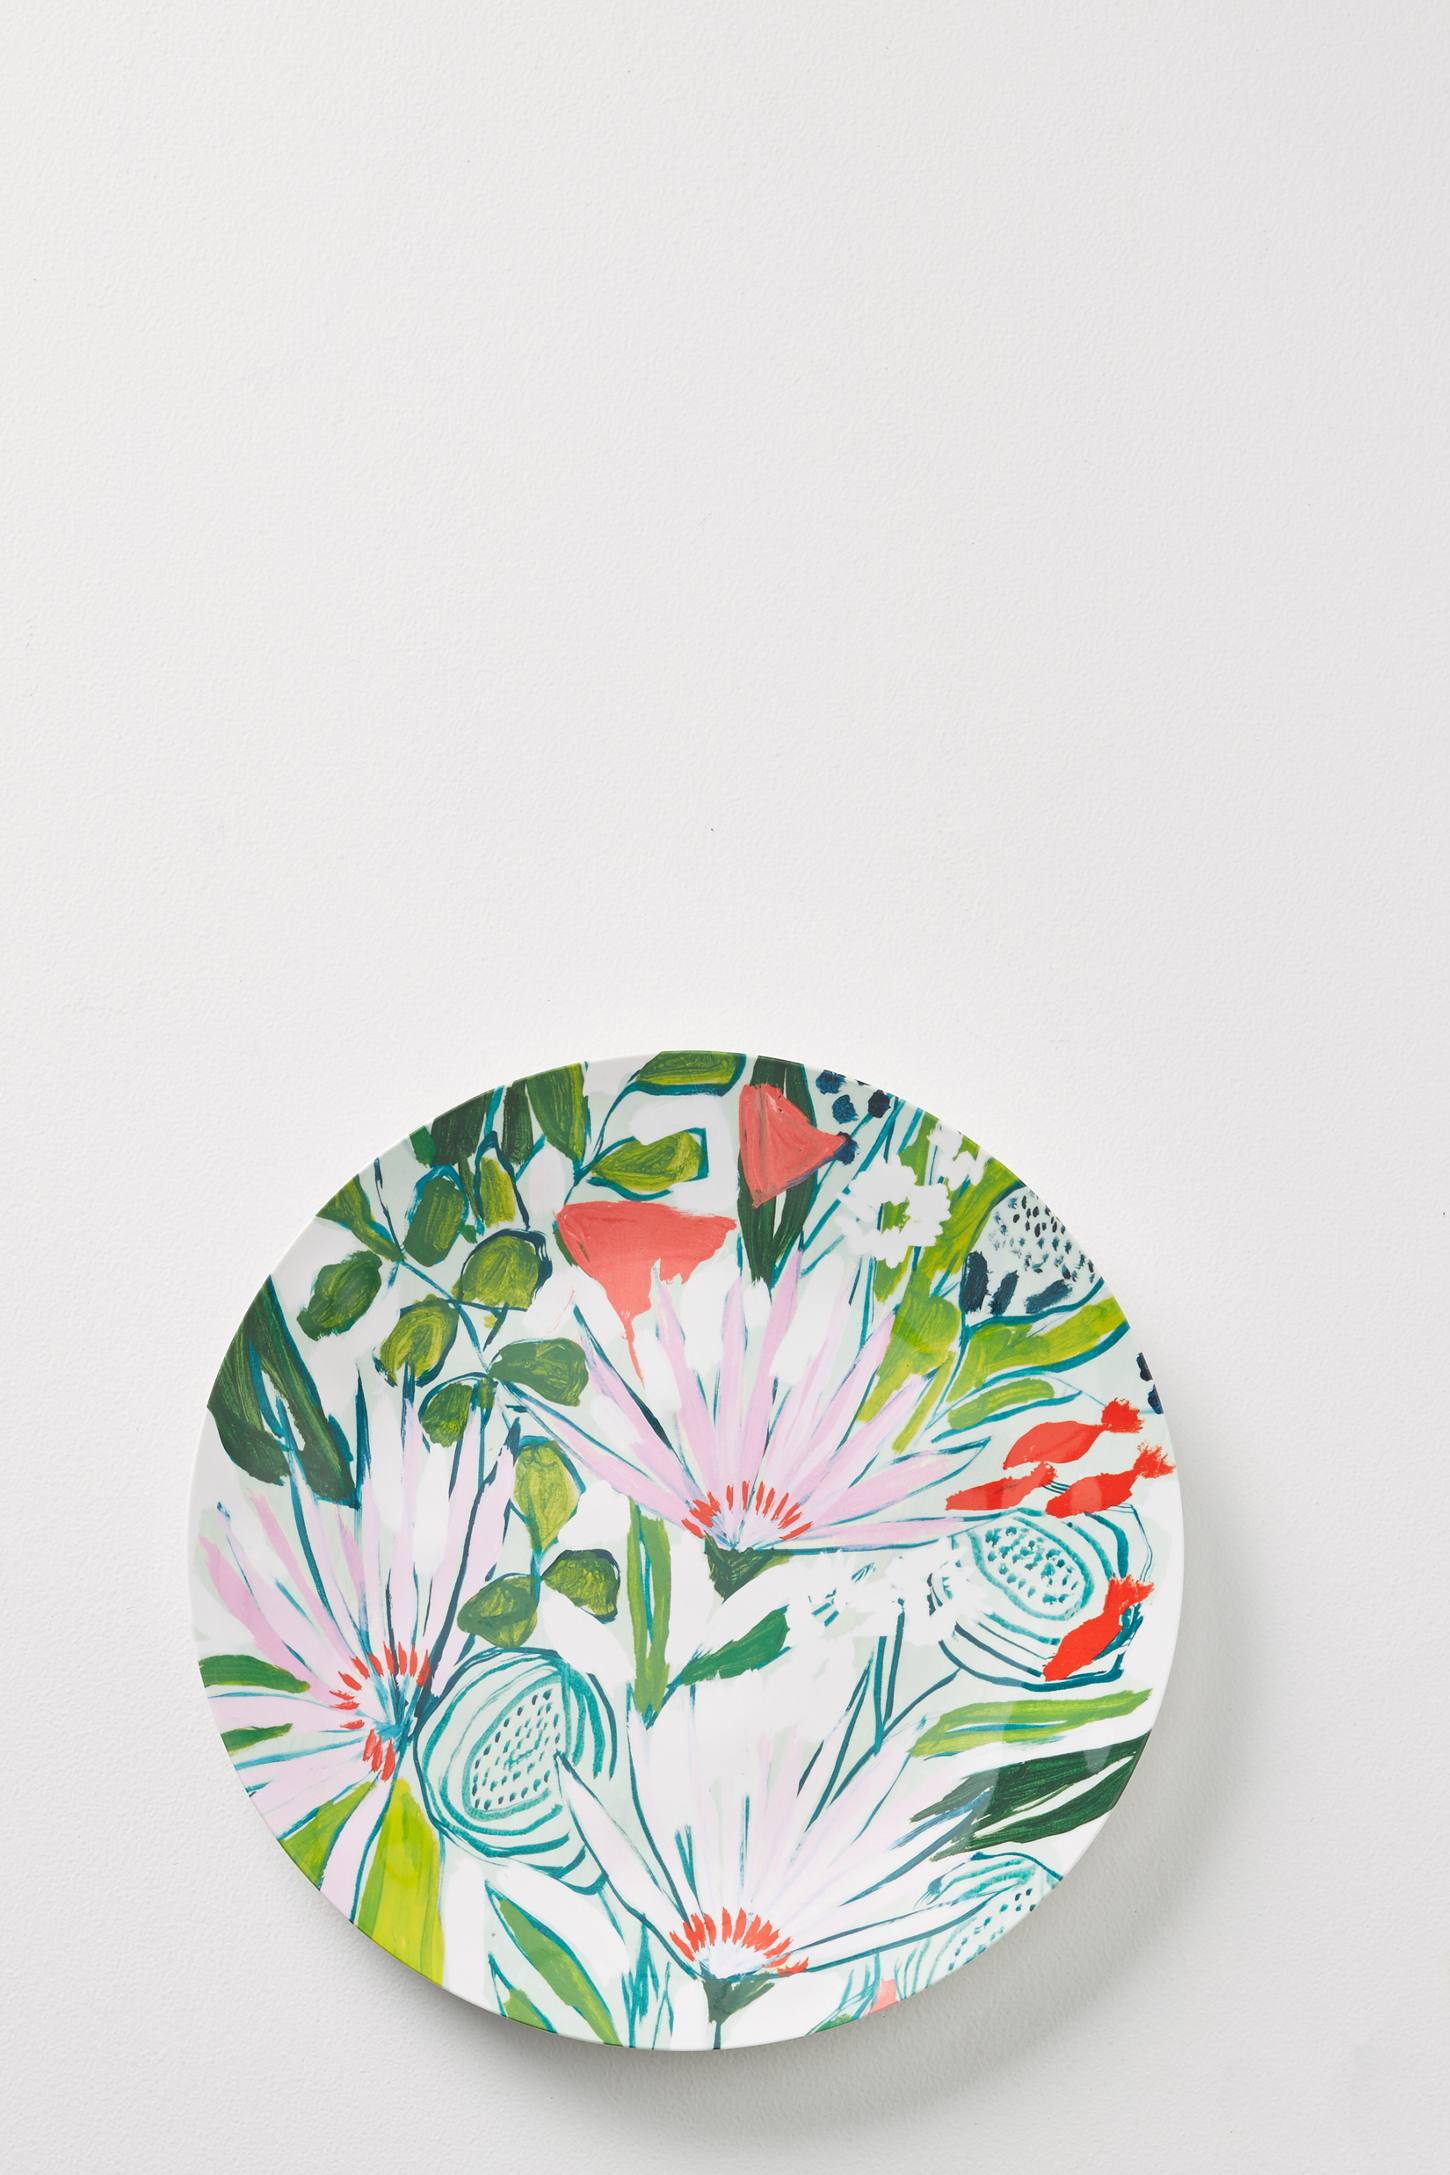 Slide View: 1: Lulie Wallace Melamine Dinner Plate